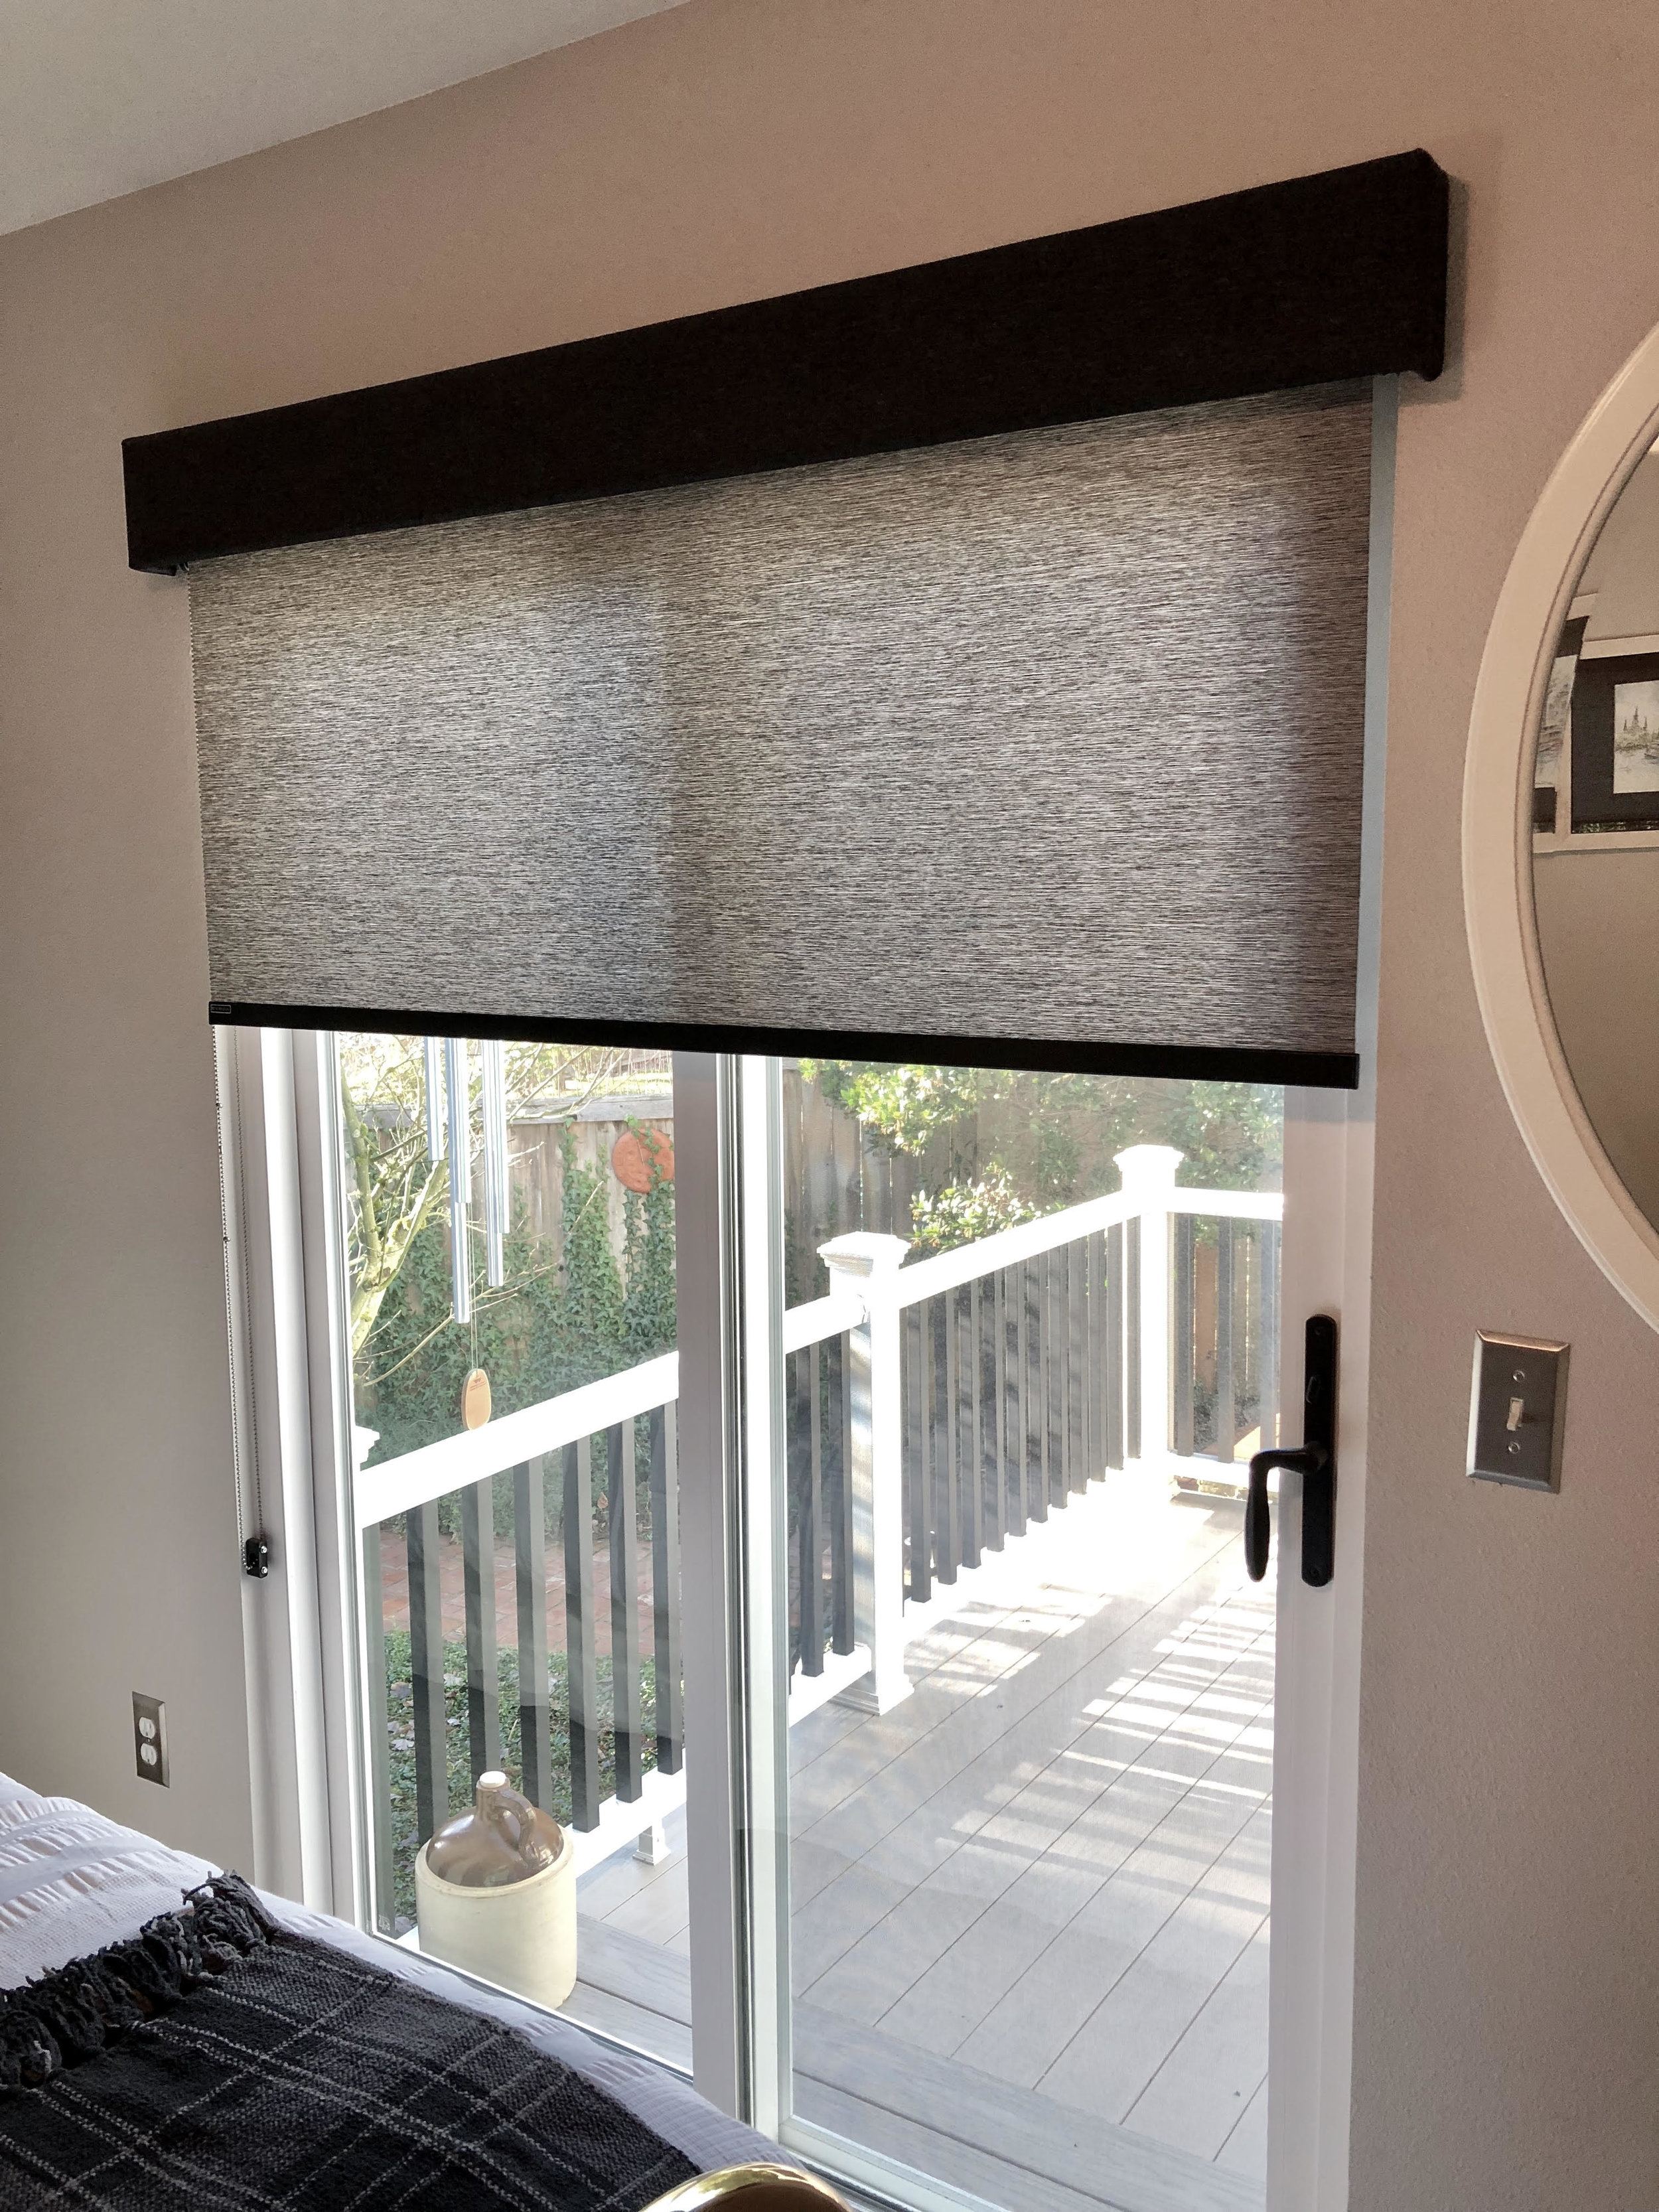 Roller Shade Fitted Over Sliding Door